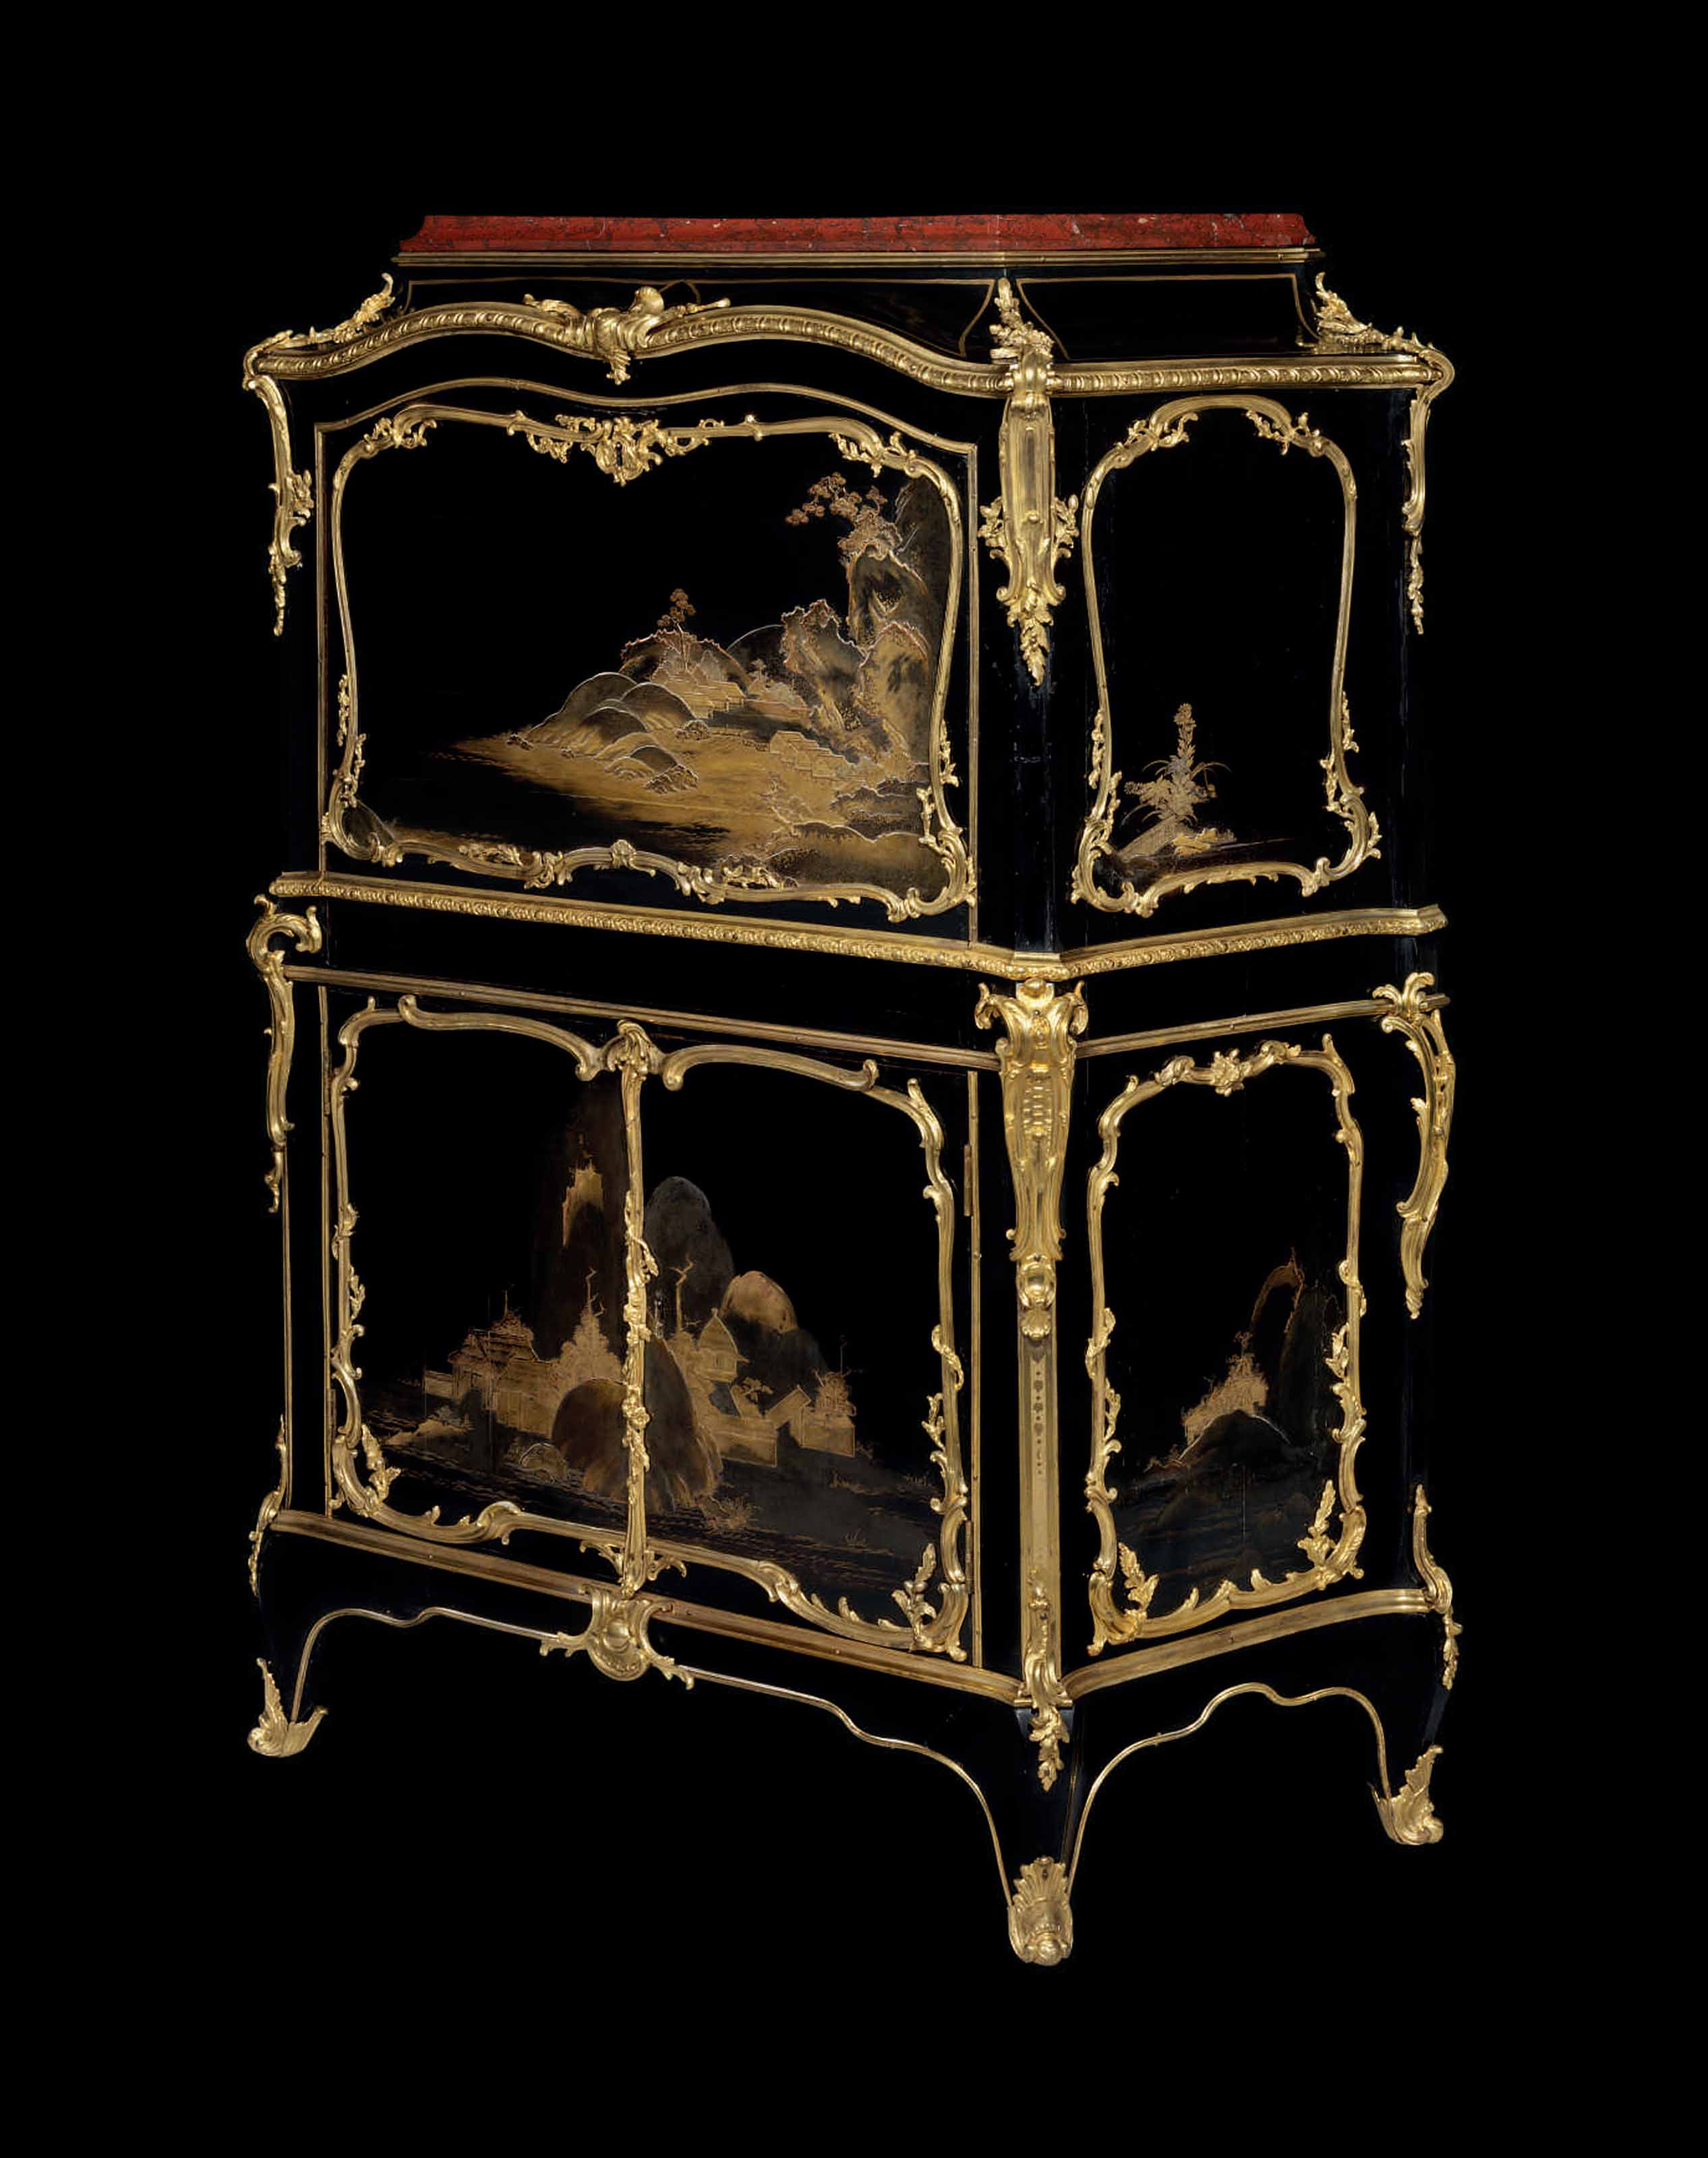 AN IMPORTANT LOUIS XV ORMOLU-MOUNTED JAPANESE LACQUER AND VERNIS MARTIN SECRETAIRE A ABATTANT